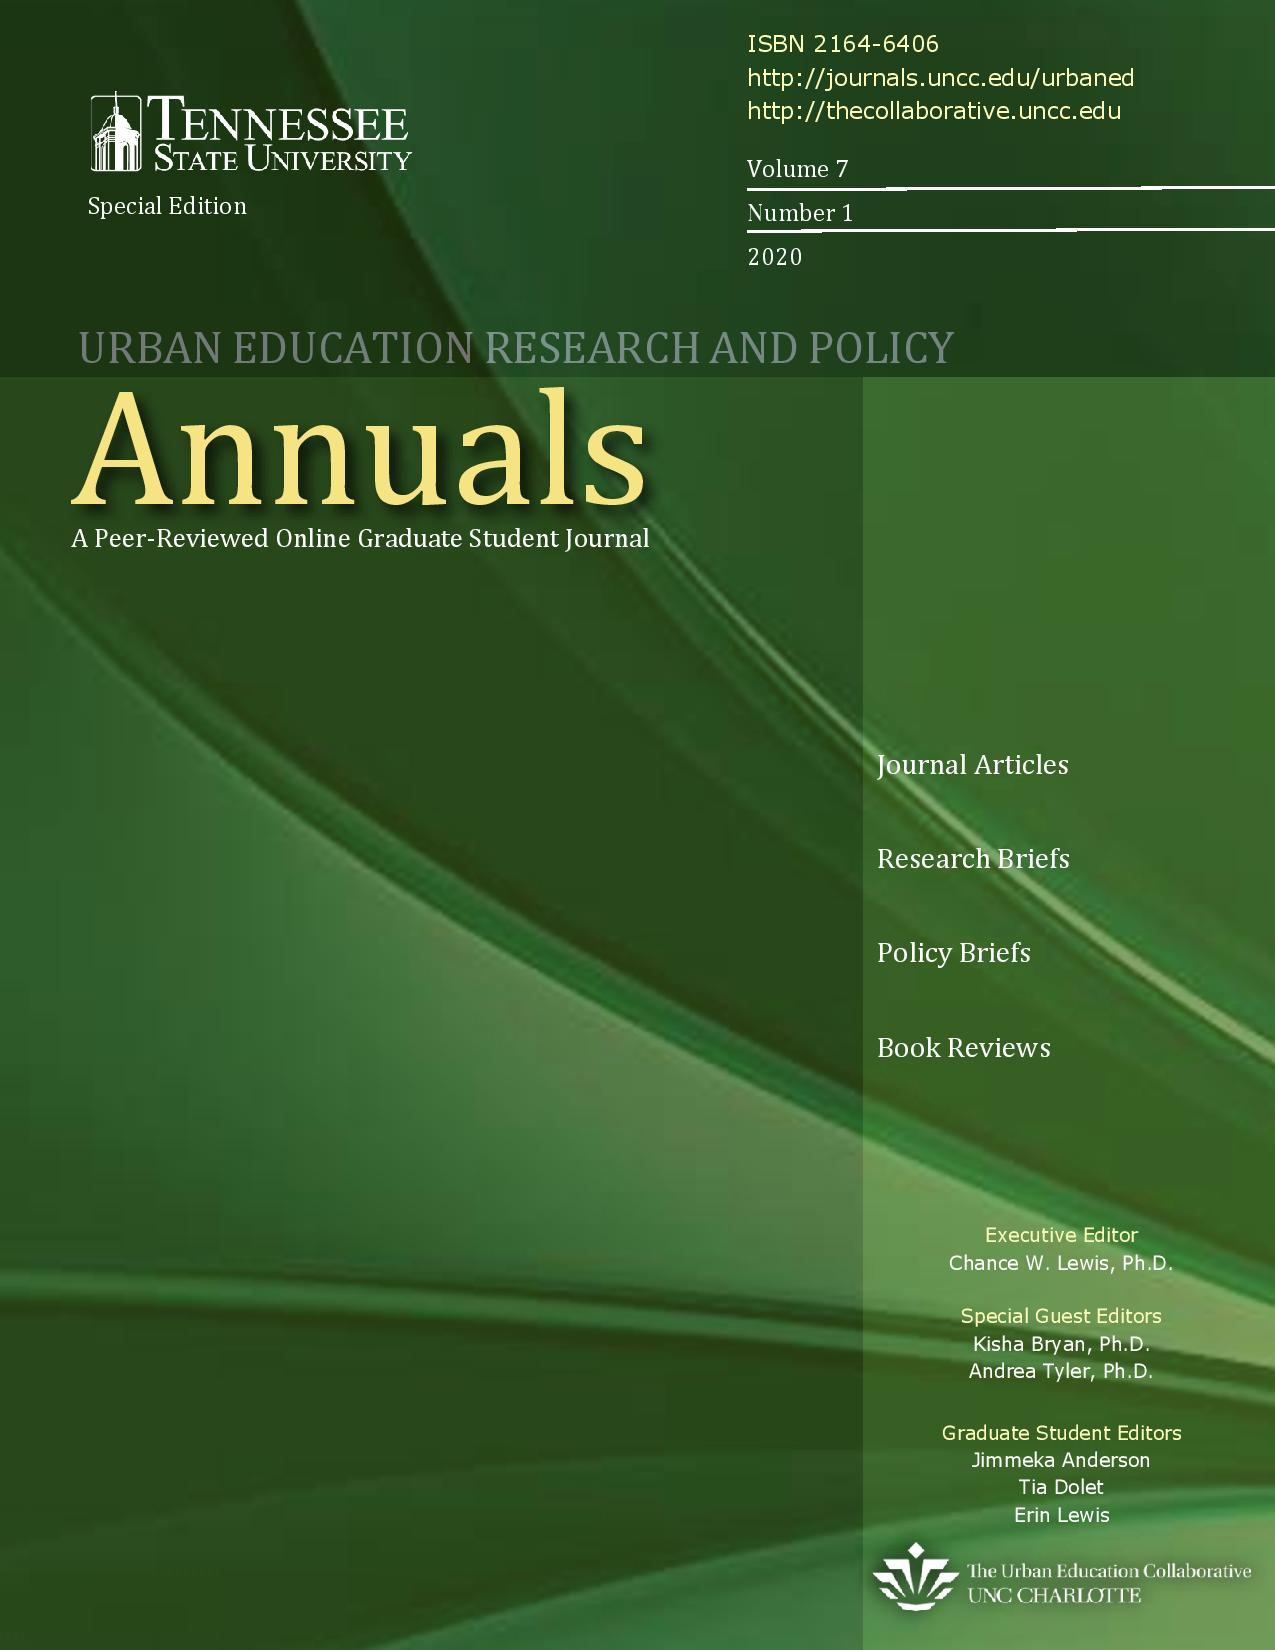 View Vol. 7 No. 1 (2020): Urban Education Research and Policy Annuals- Tennessee State University Special Edition